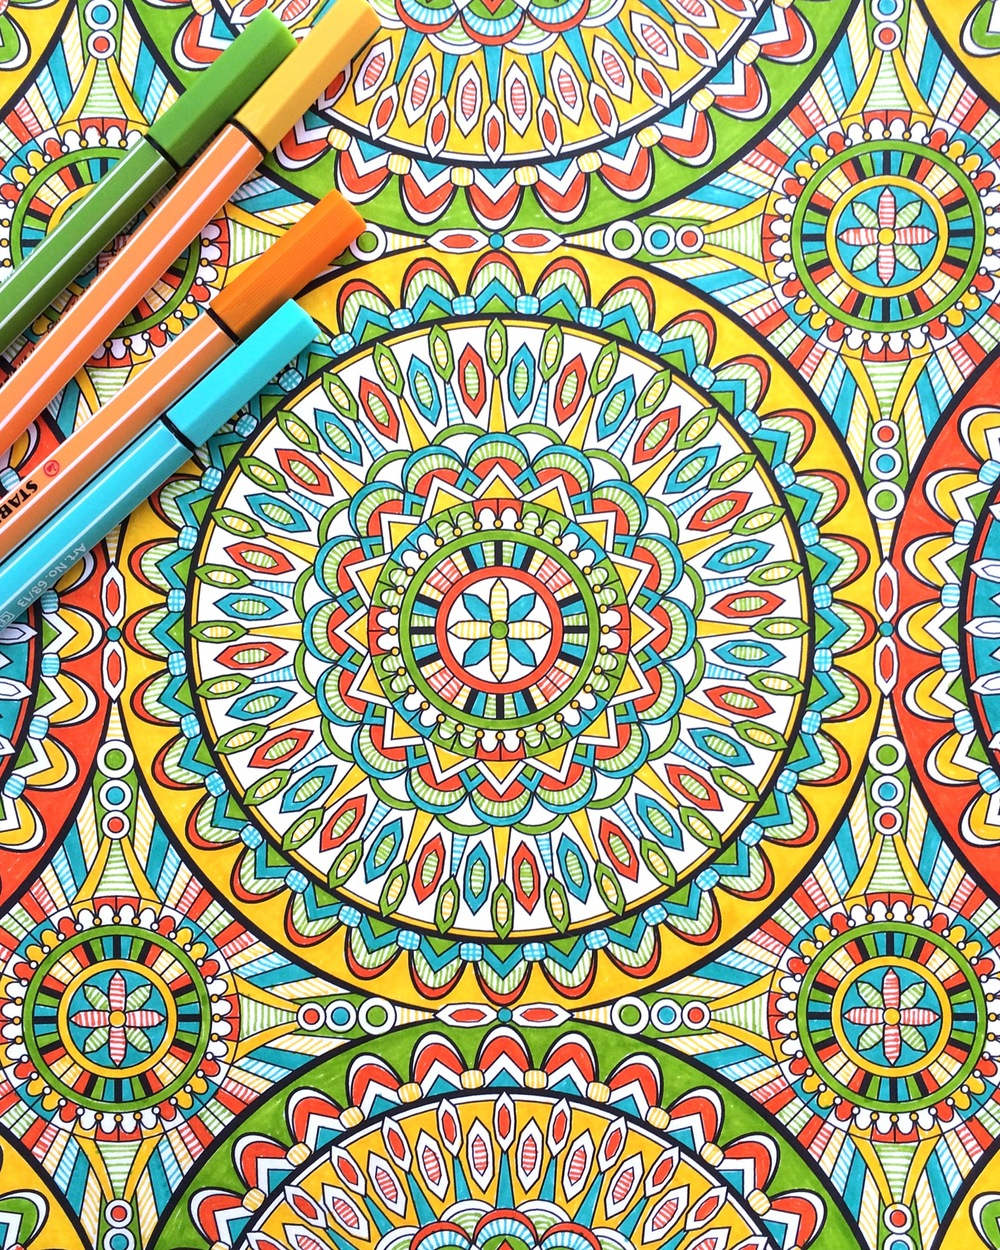 Super Awesome Coloring Book By Mark Cesarik Edited Jenean Morrison